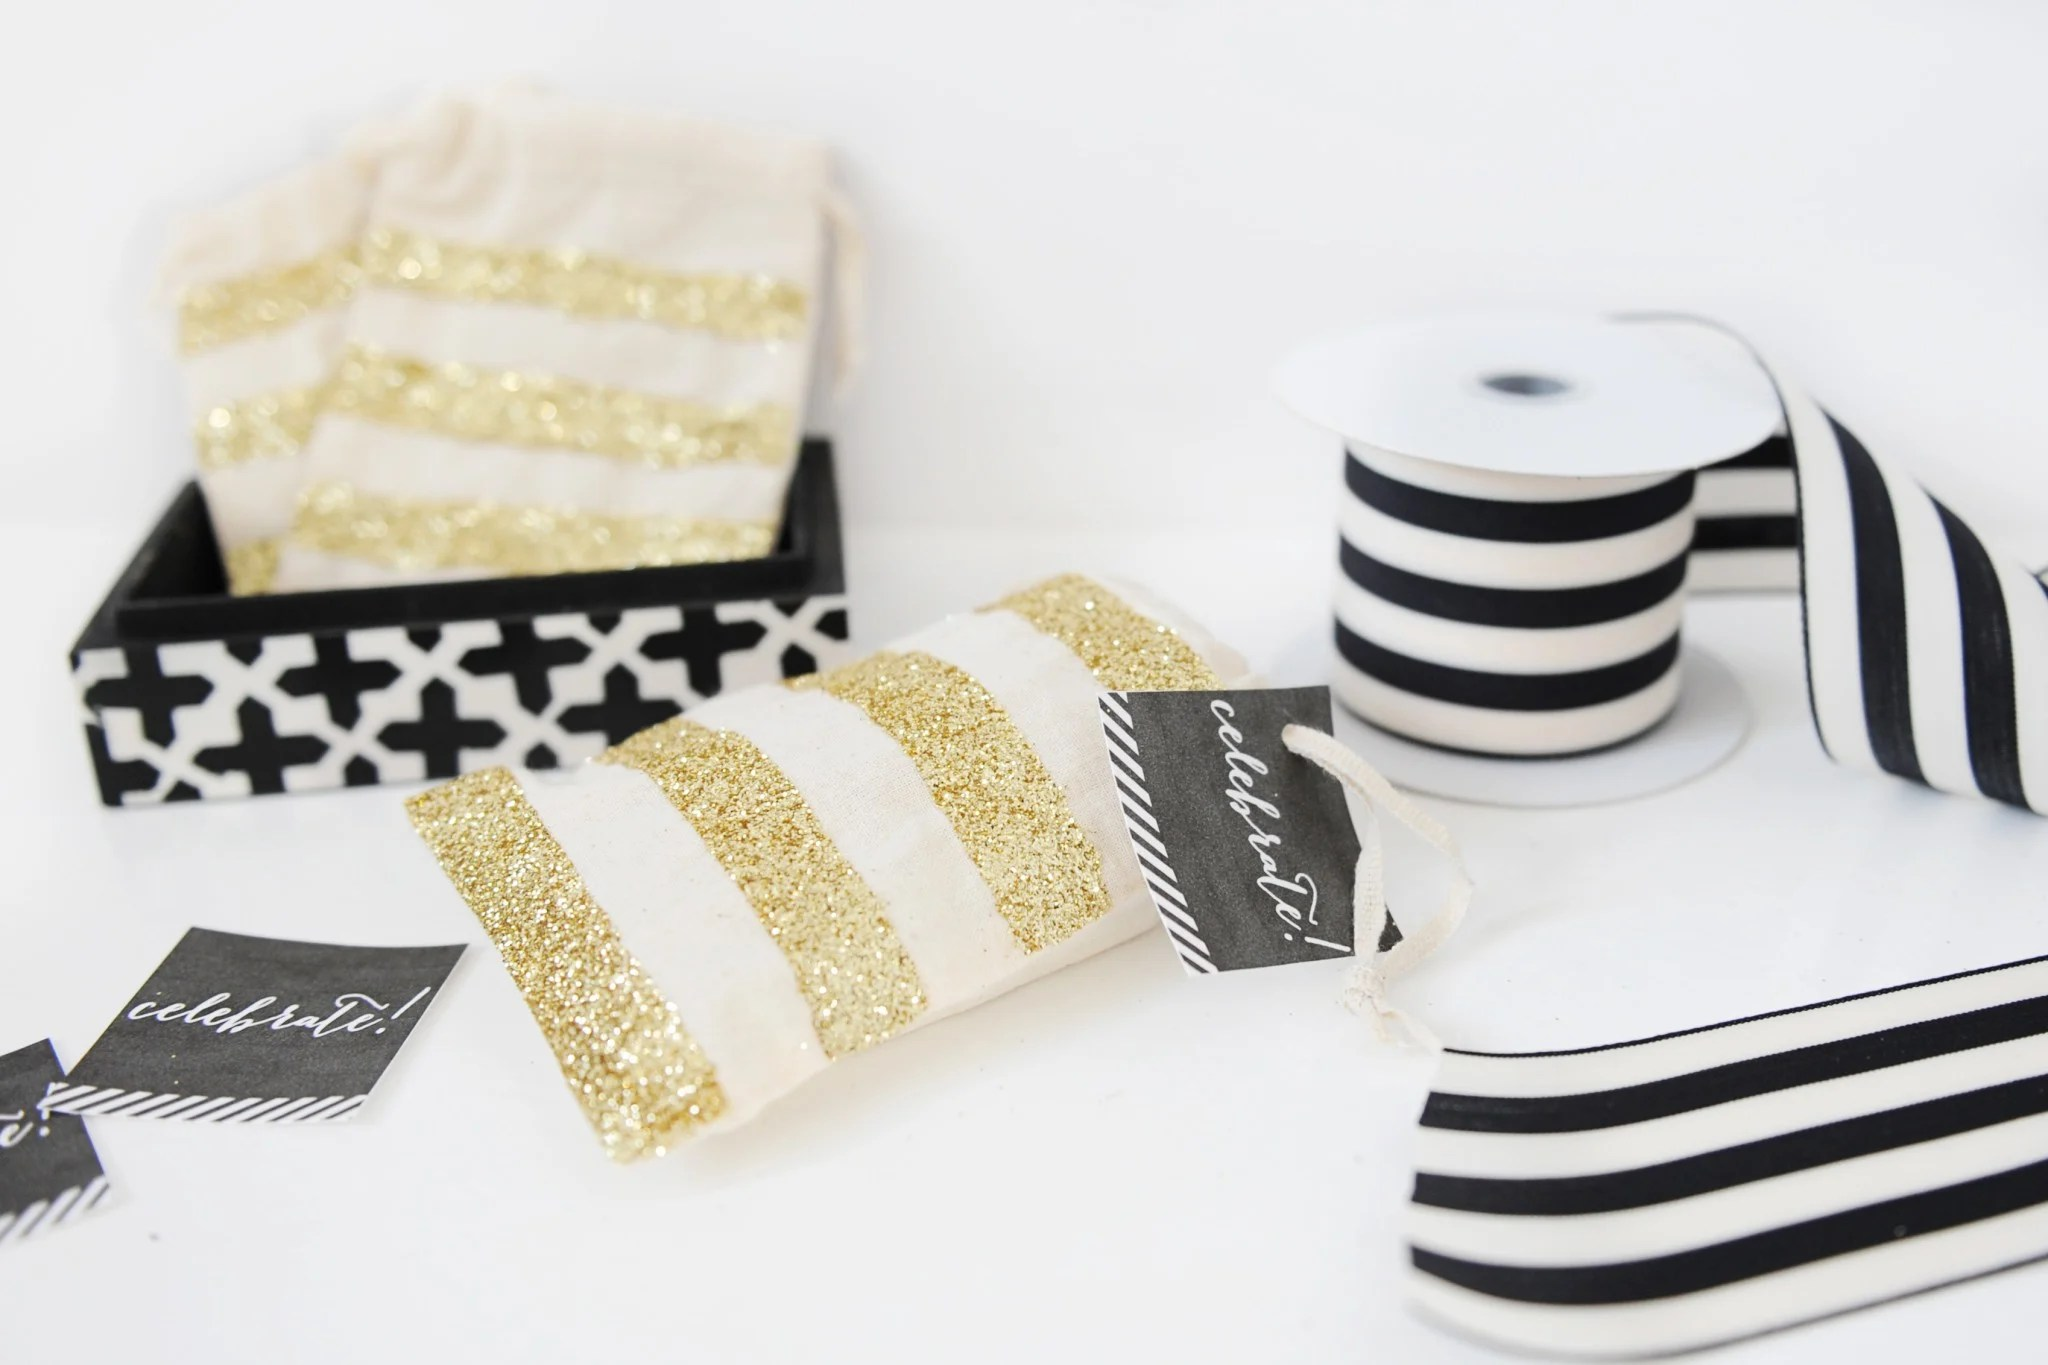 DIY Glittered Muslin Bags Perfect for Wrapping Gift Cards